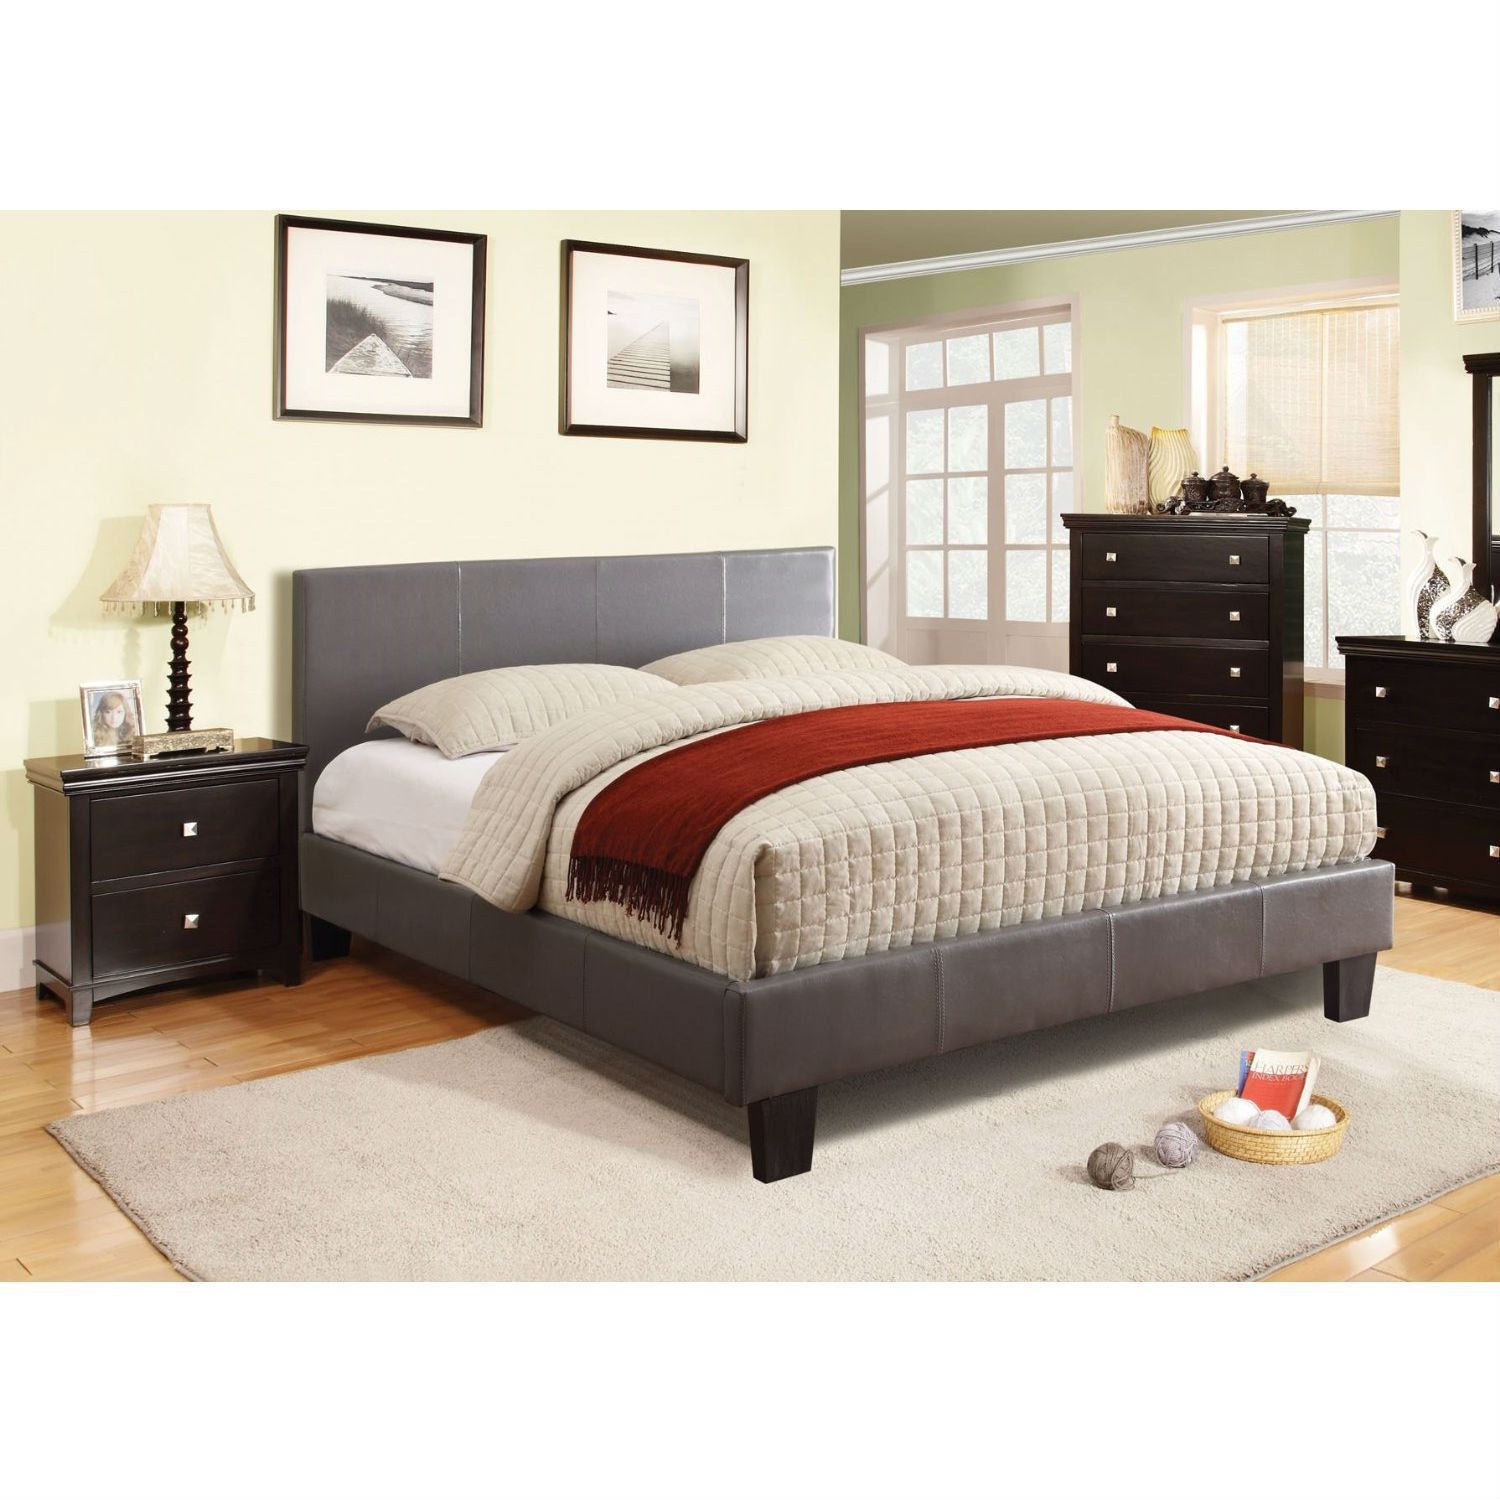 Queen size Platform Bed with Headboard Upholstered